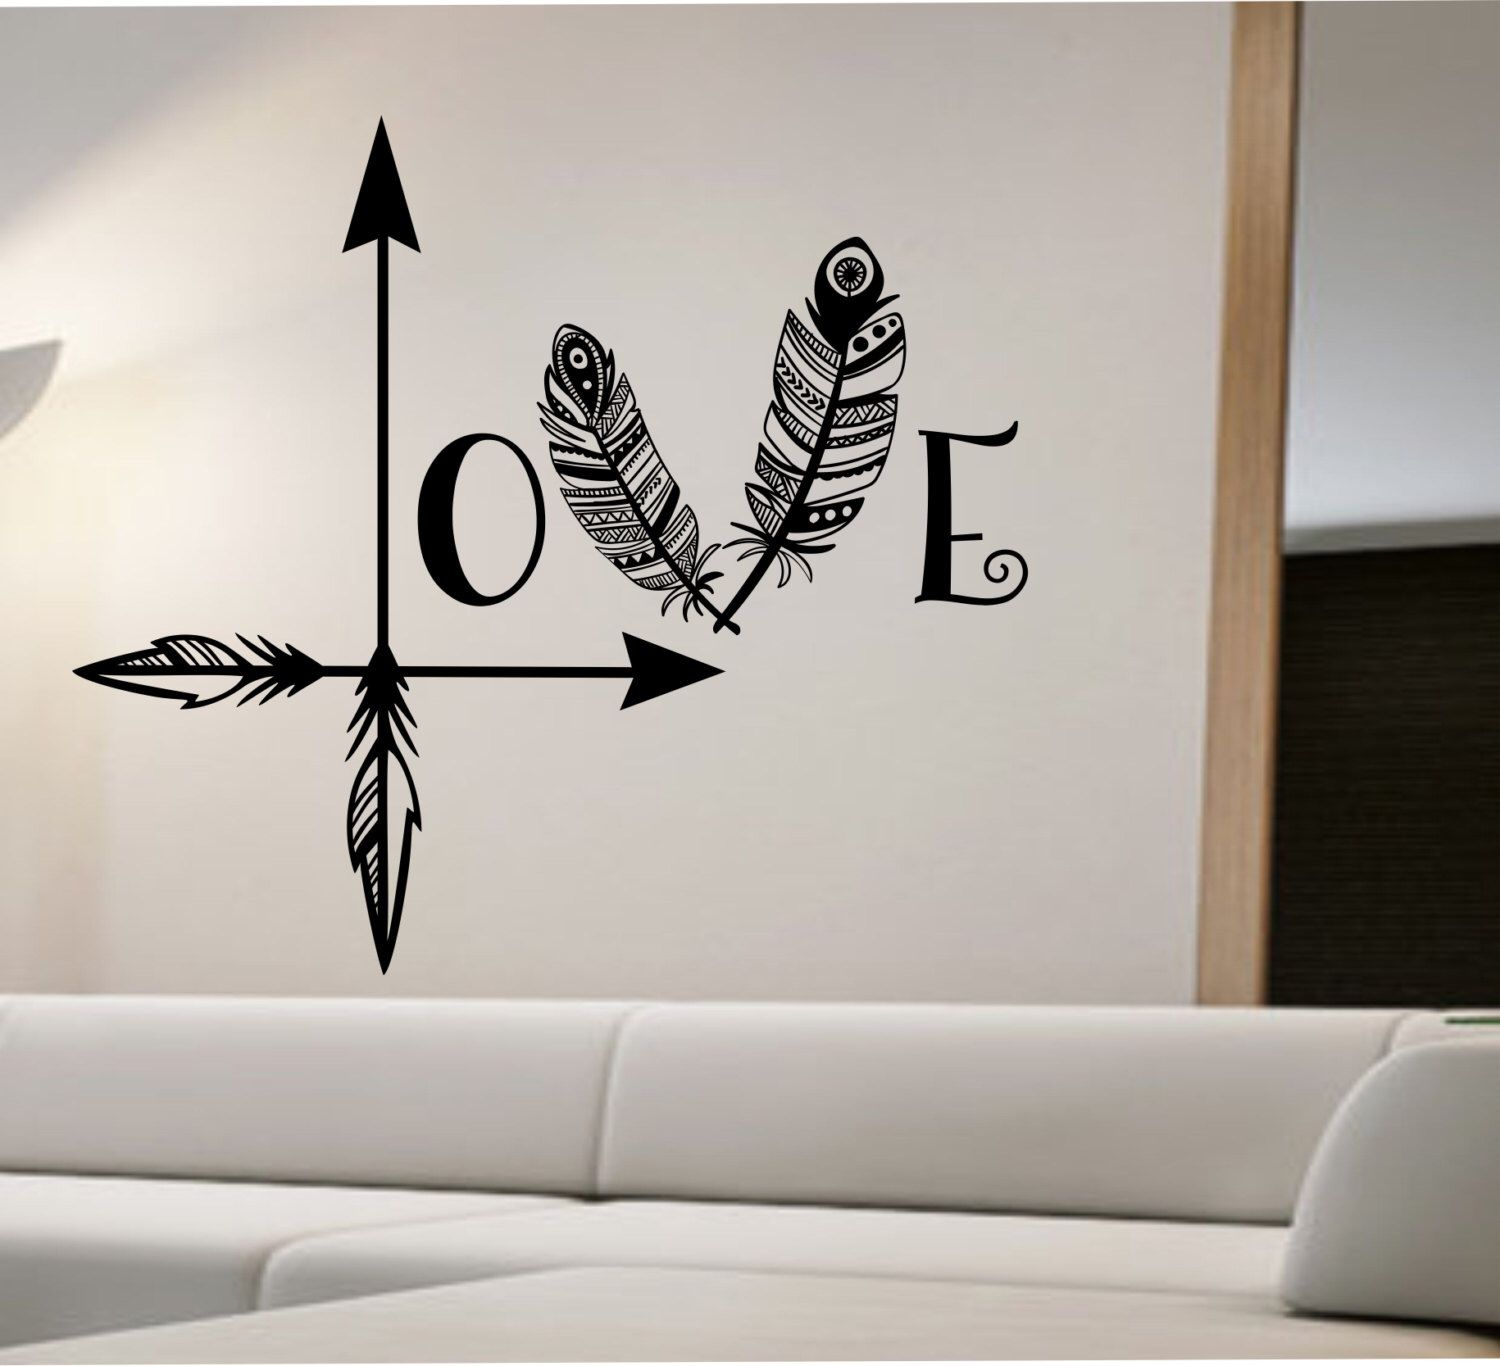 Pvc Wall Design Images : Arrow feather love wall decal namaste vinyl sticker art